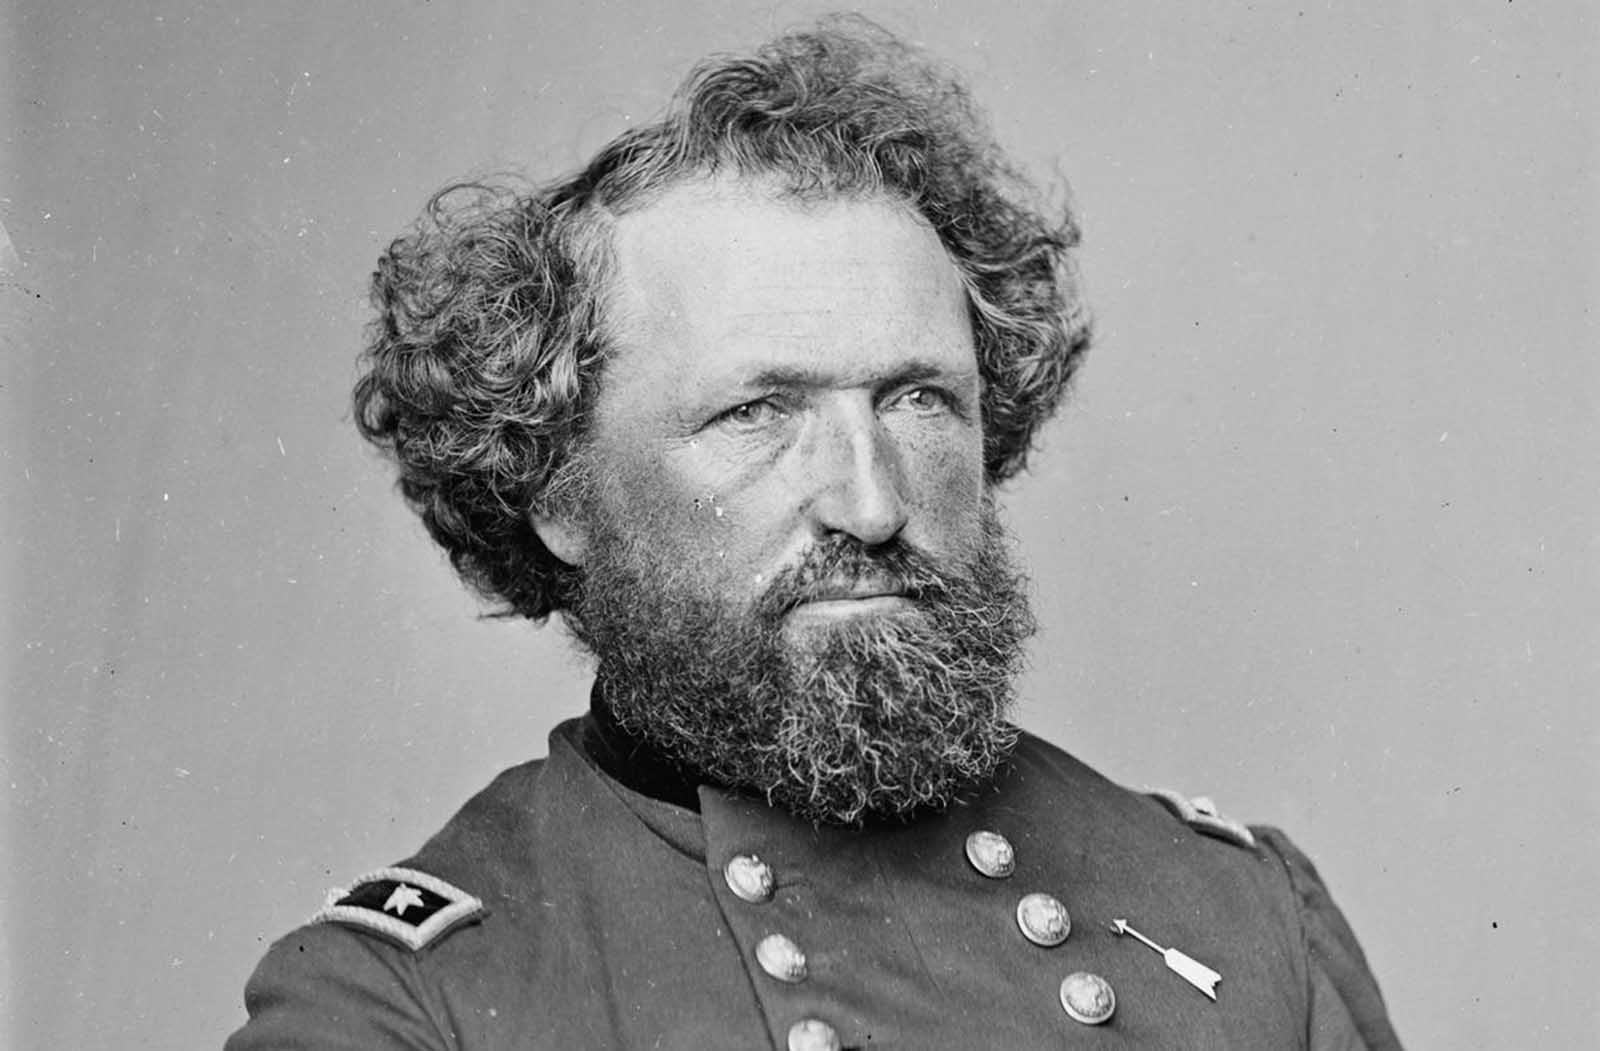 Union Major General Mortimer D. Leggett, photographed sometime between 1860 and 1865.